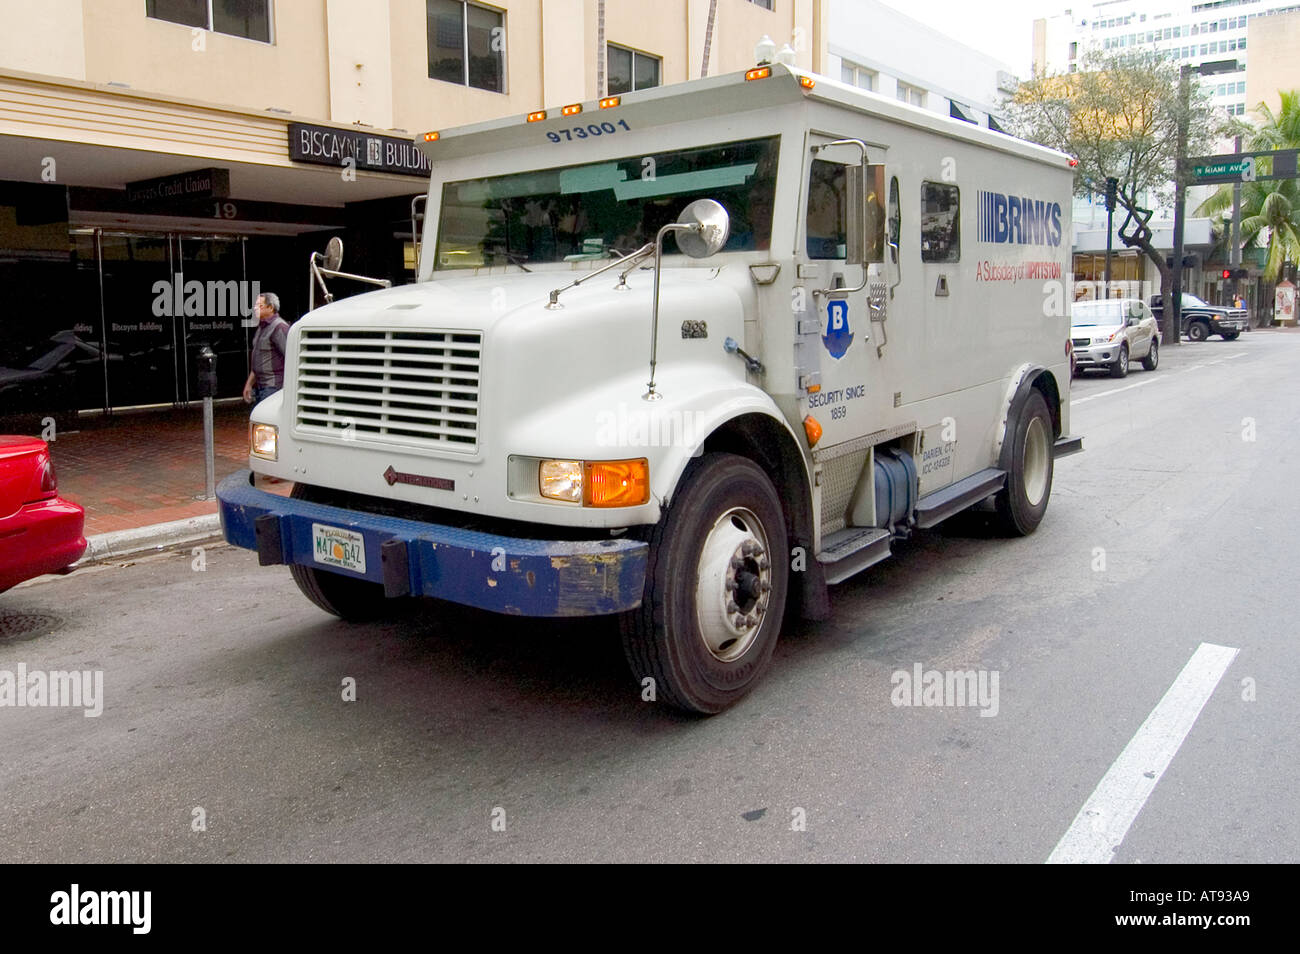 Miami Florida Street Life Brinks Armored Truck picks up and delivers ...